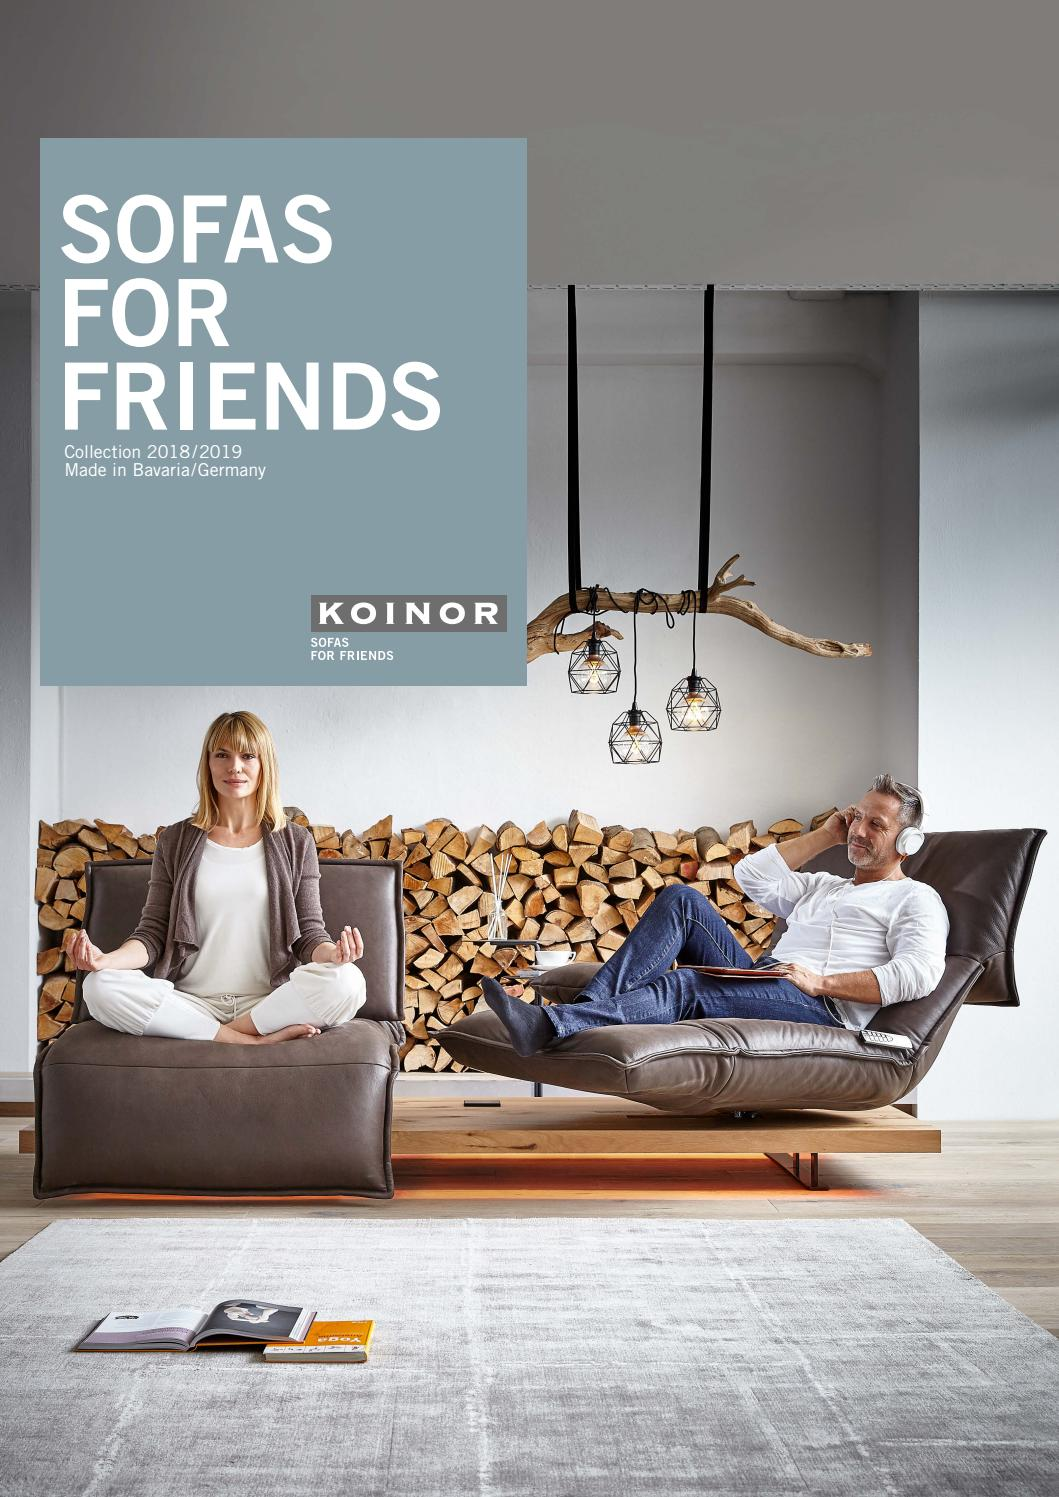 Koinor Sessel Silencio Koinor Collection 2018 2019 By Colifac En Krea Issuu